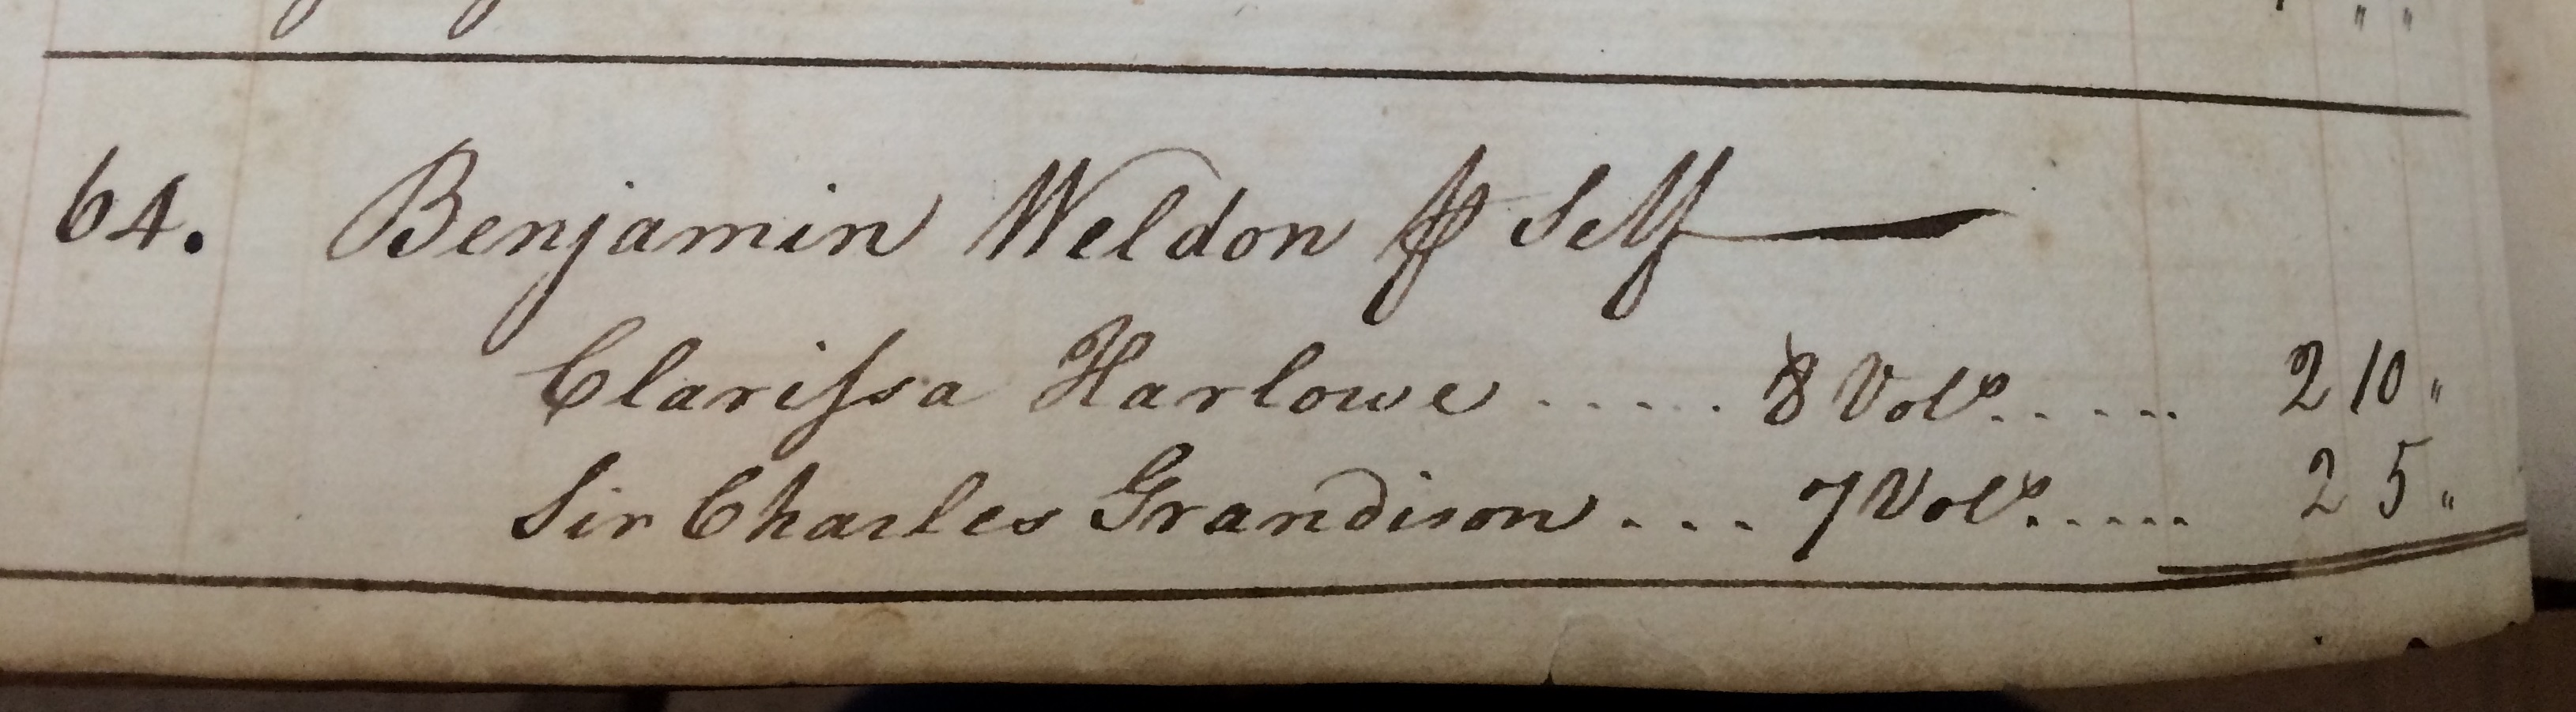 "Alongside Shakespeare in the Virginia Gazette Daybook, I found a recorded purchase of two of Samuel Richardson's novels, ""Clarissa: Or, the History of a Young Lady"" (1747-8) and ""The History of Sir Charles Grandison"" (1753)."